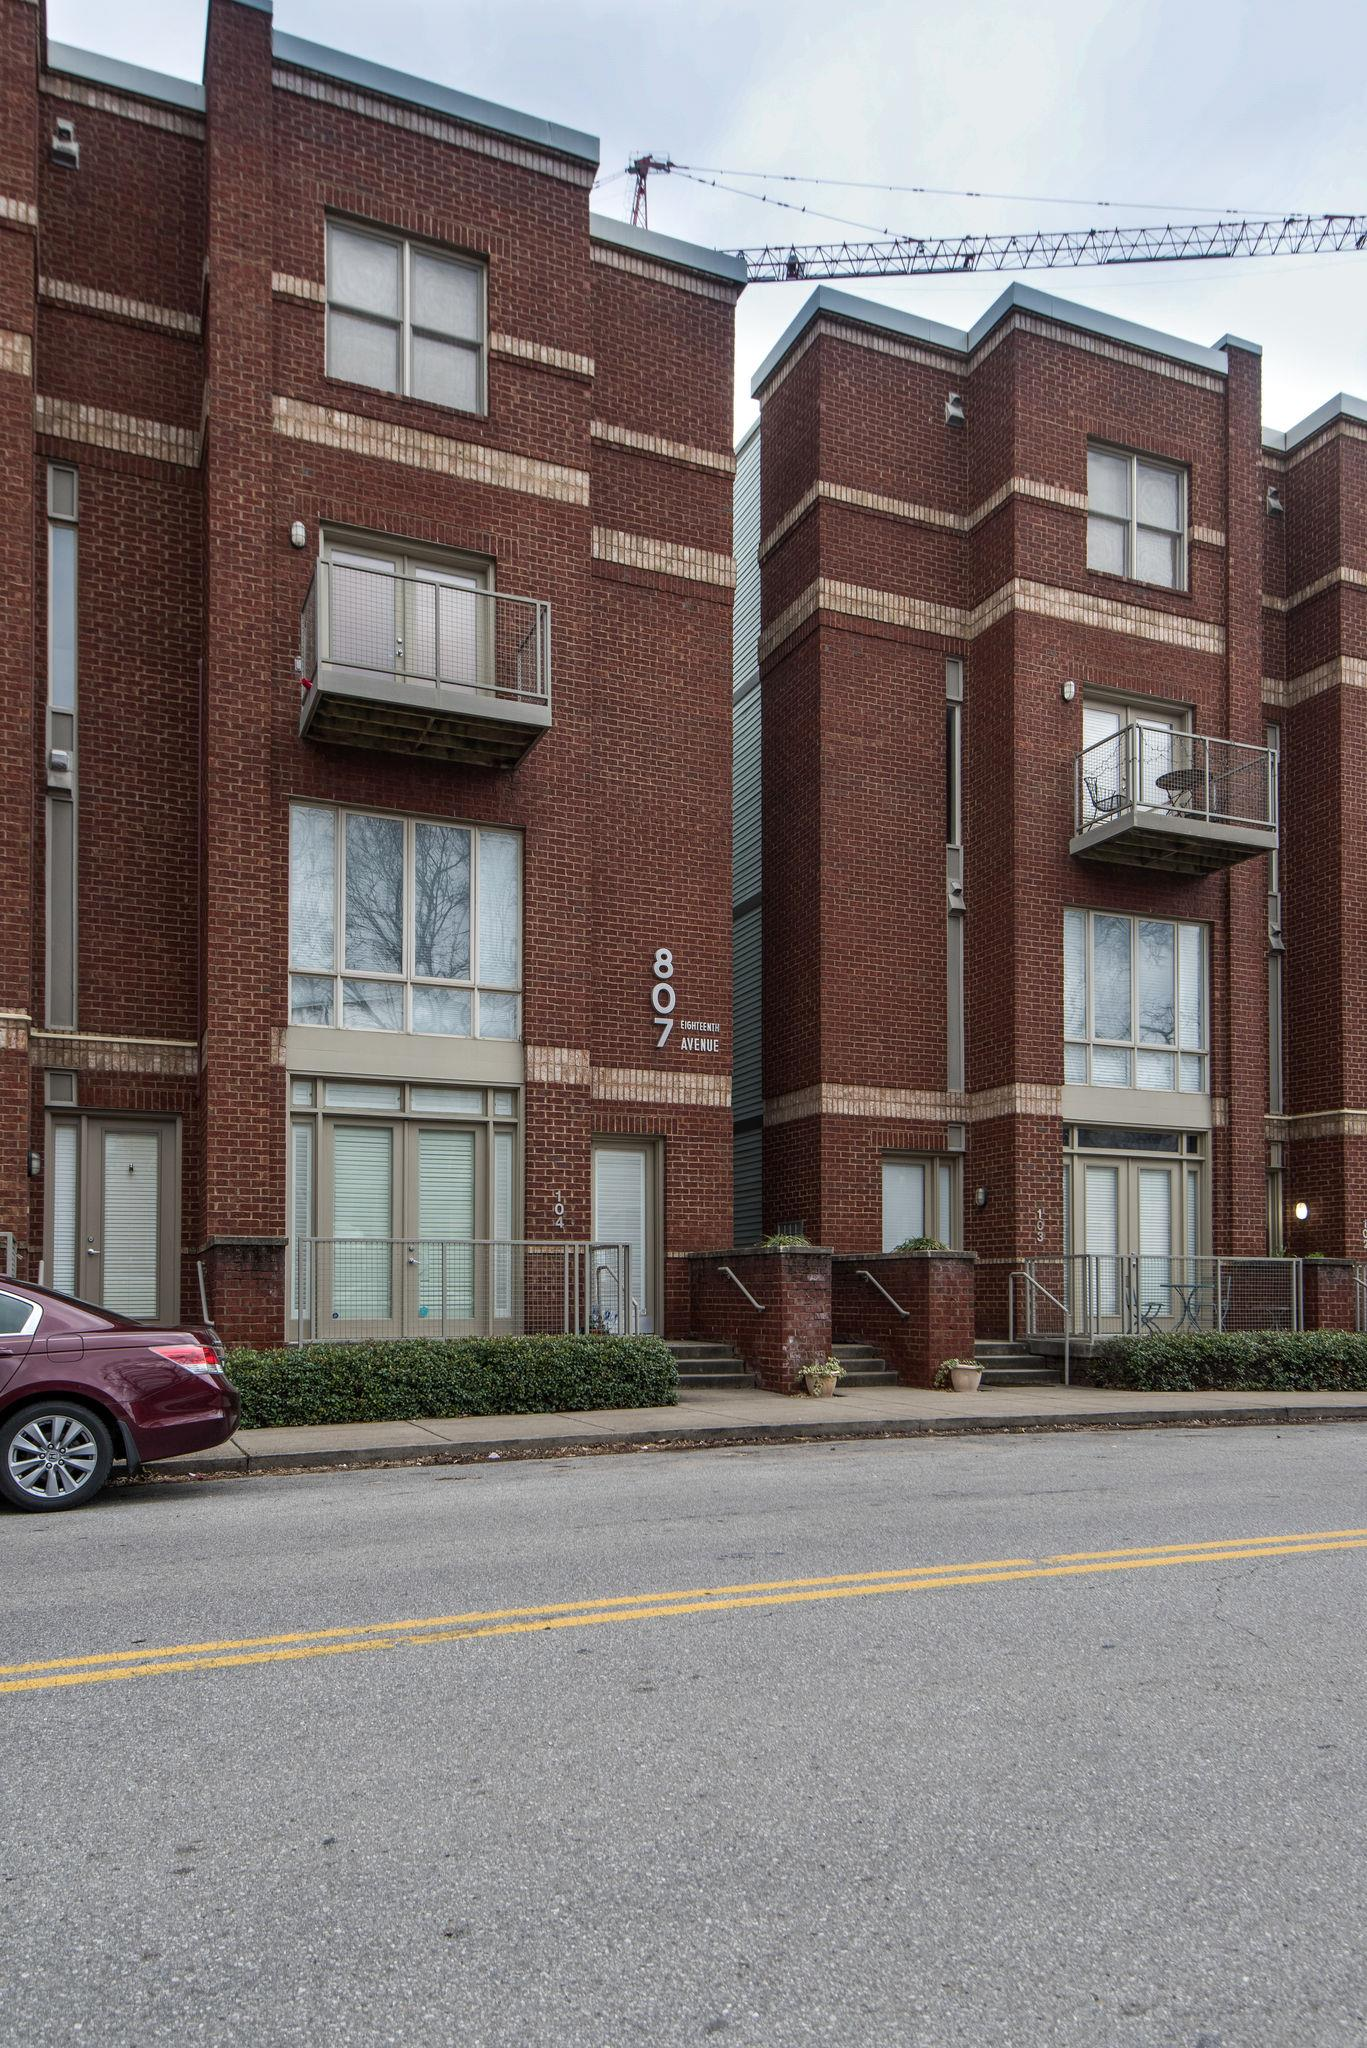 807 18Th Ave S Apt 108, Nashville - Midtown in Davidson County County, TN 37203 Home for Sale